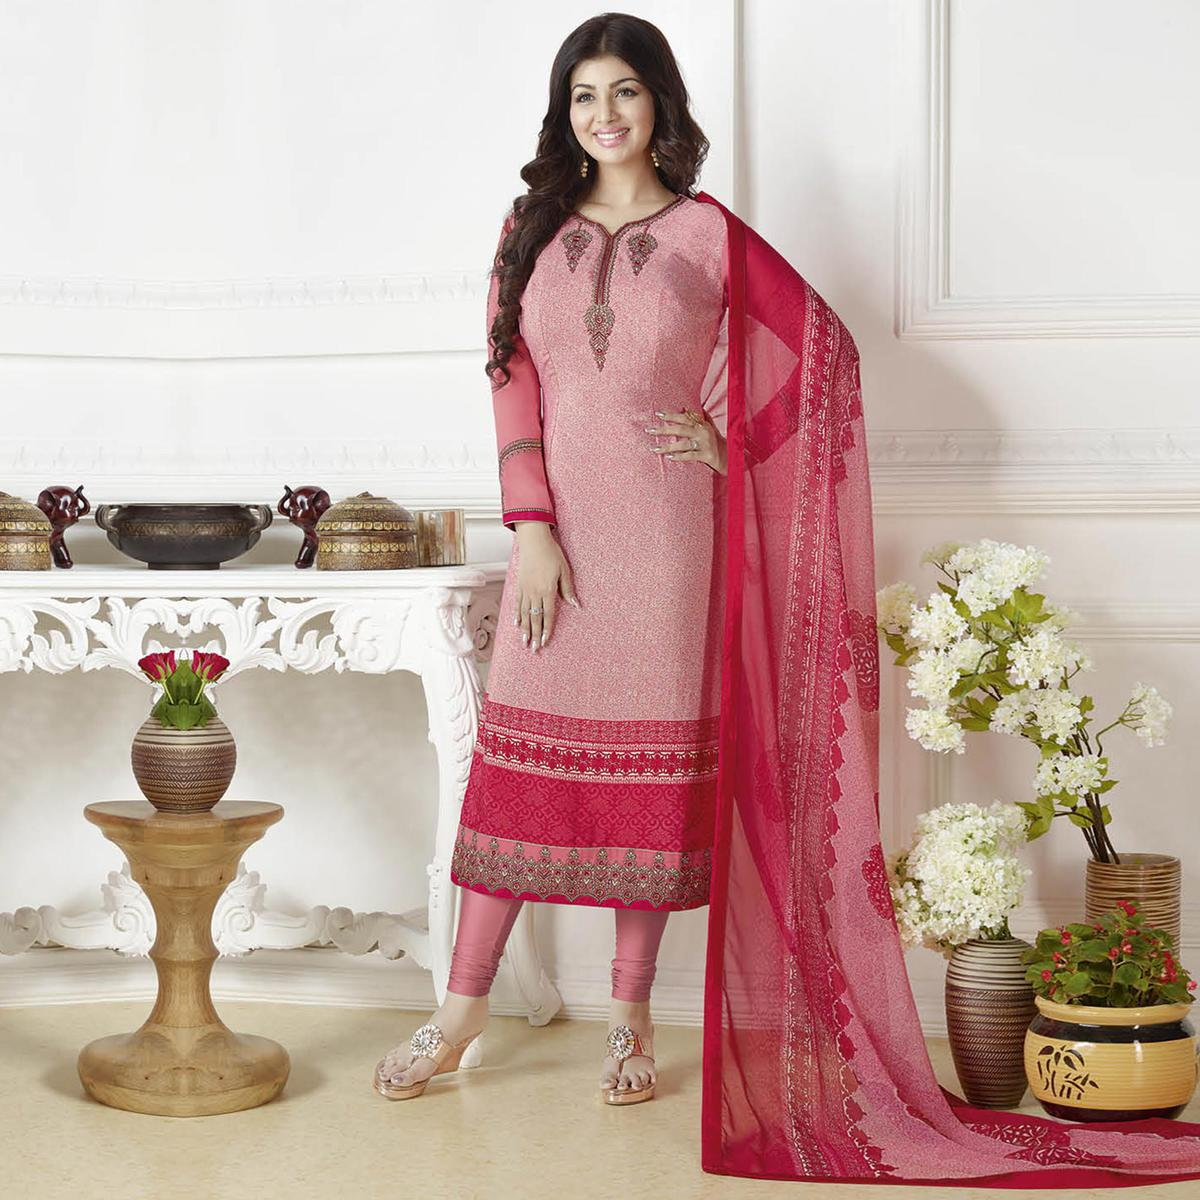 Classy Light Pink Embroidered French Crepe Suit